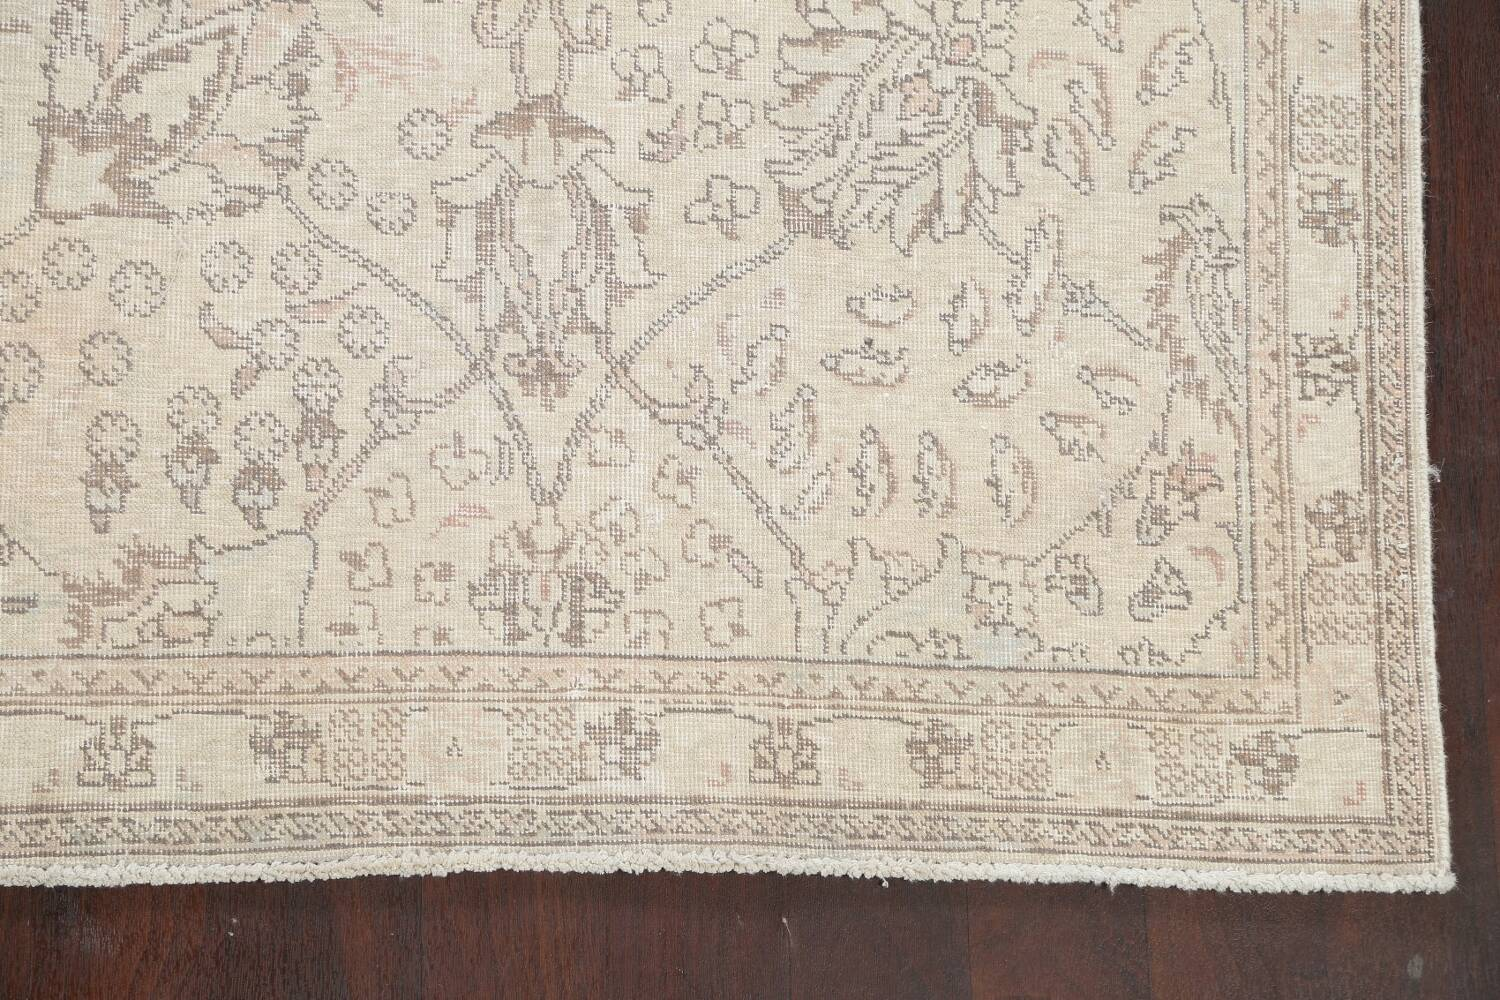 Floral Muted Tabriz Persian Area Rug 7x7 Square image 5